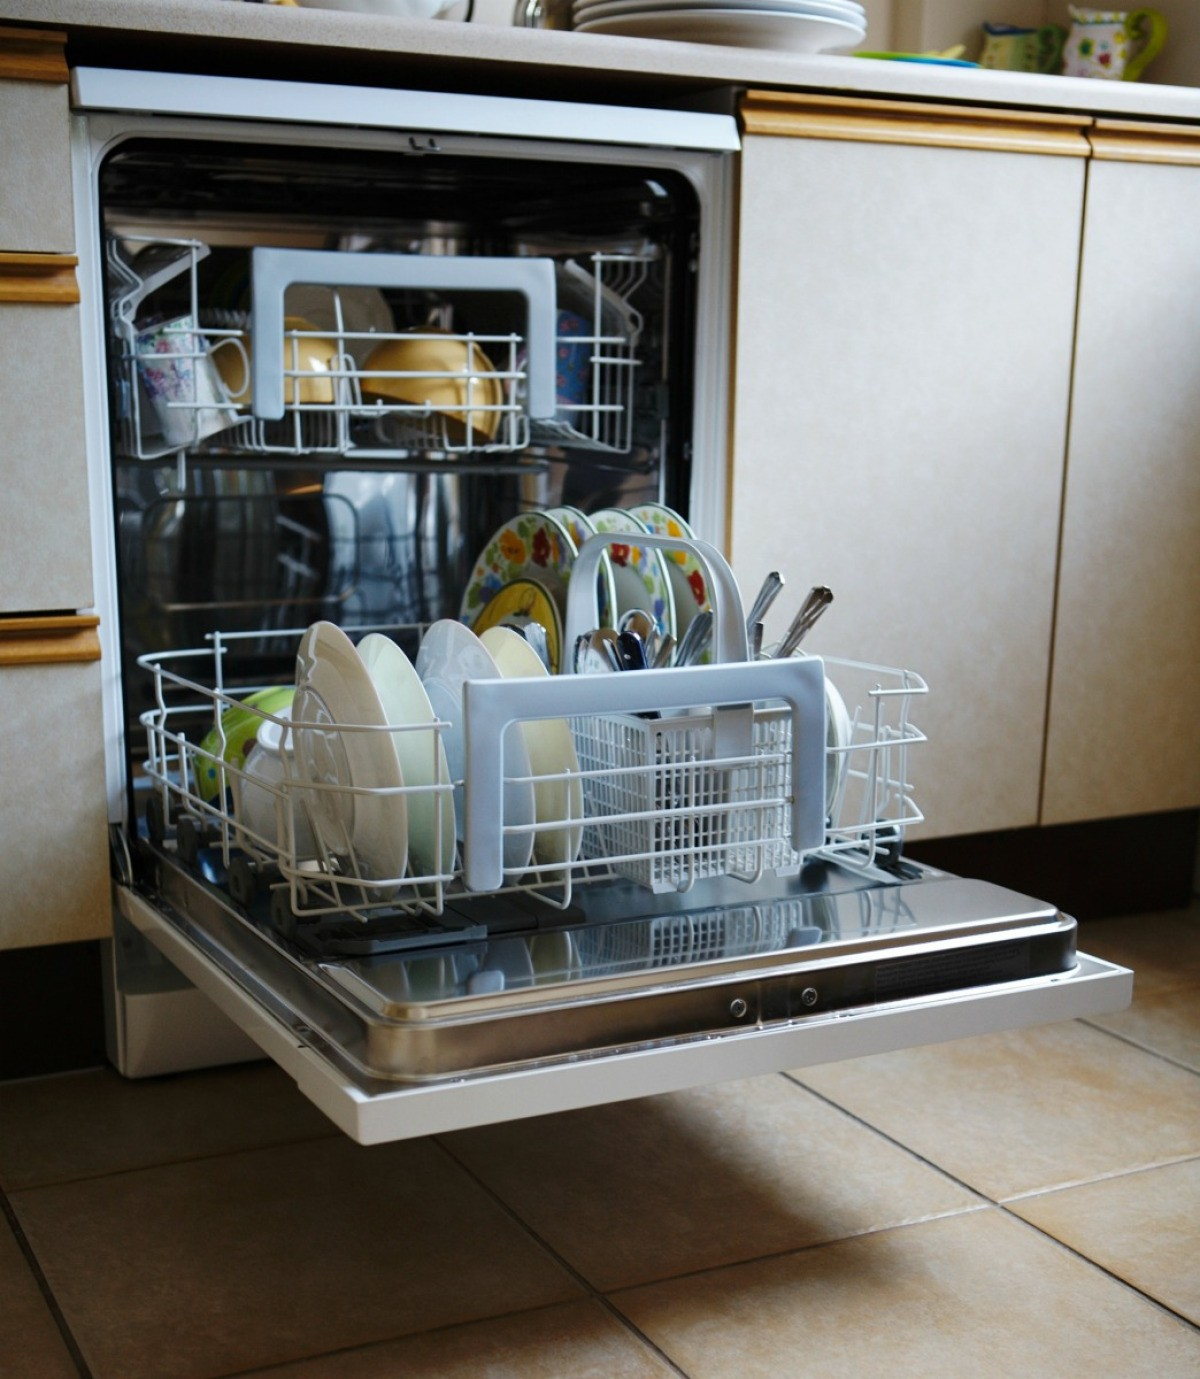 Are the Dishes in the Dishwasher Clean or Dirty? | ThriftyFun